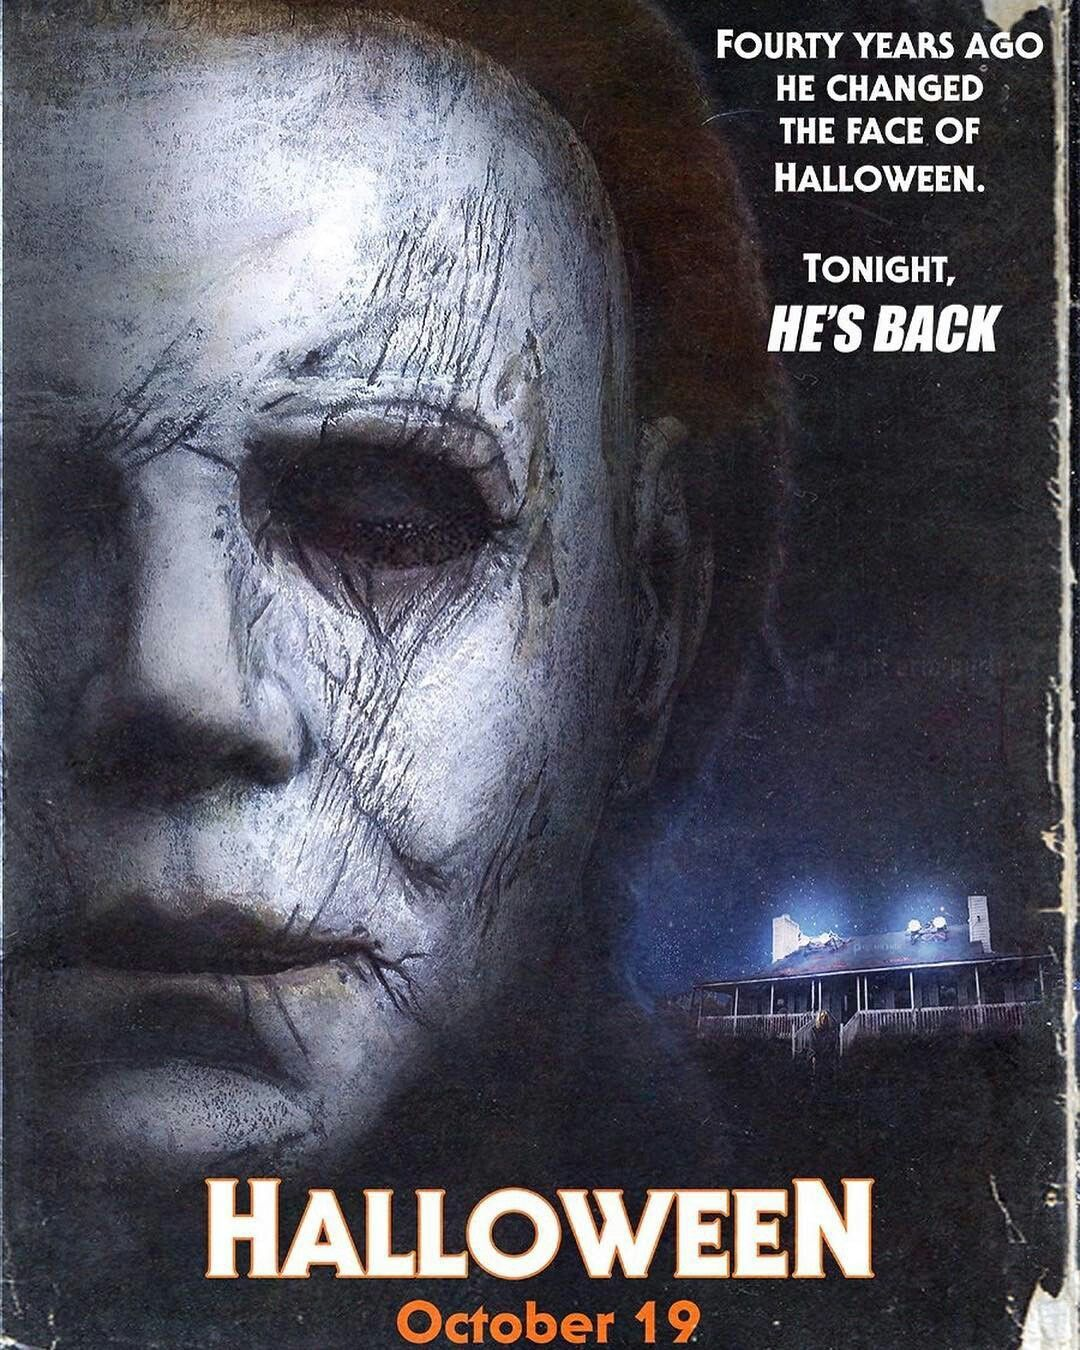 Pin by The Slasher on Michael myers in 2019 Michael myers Scary 1080x1350